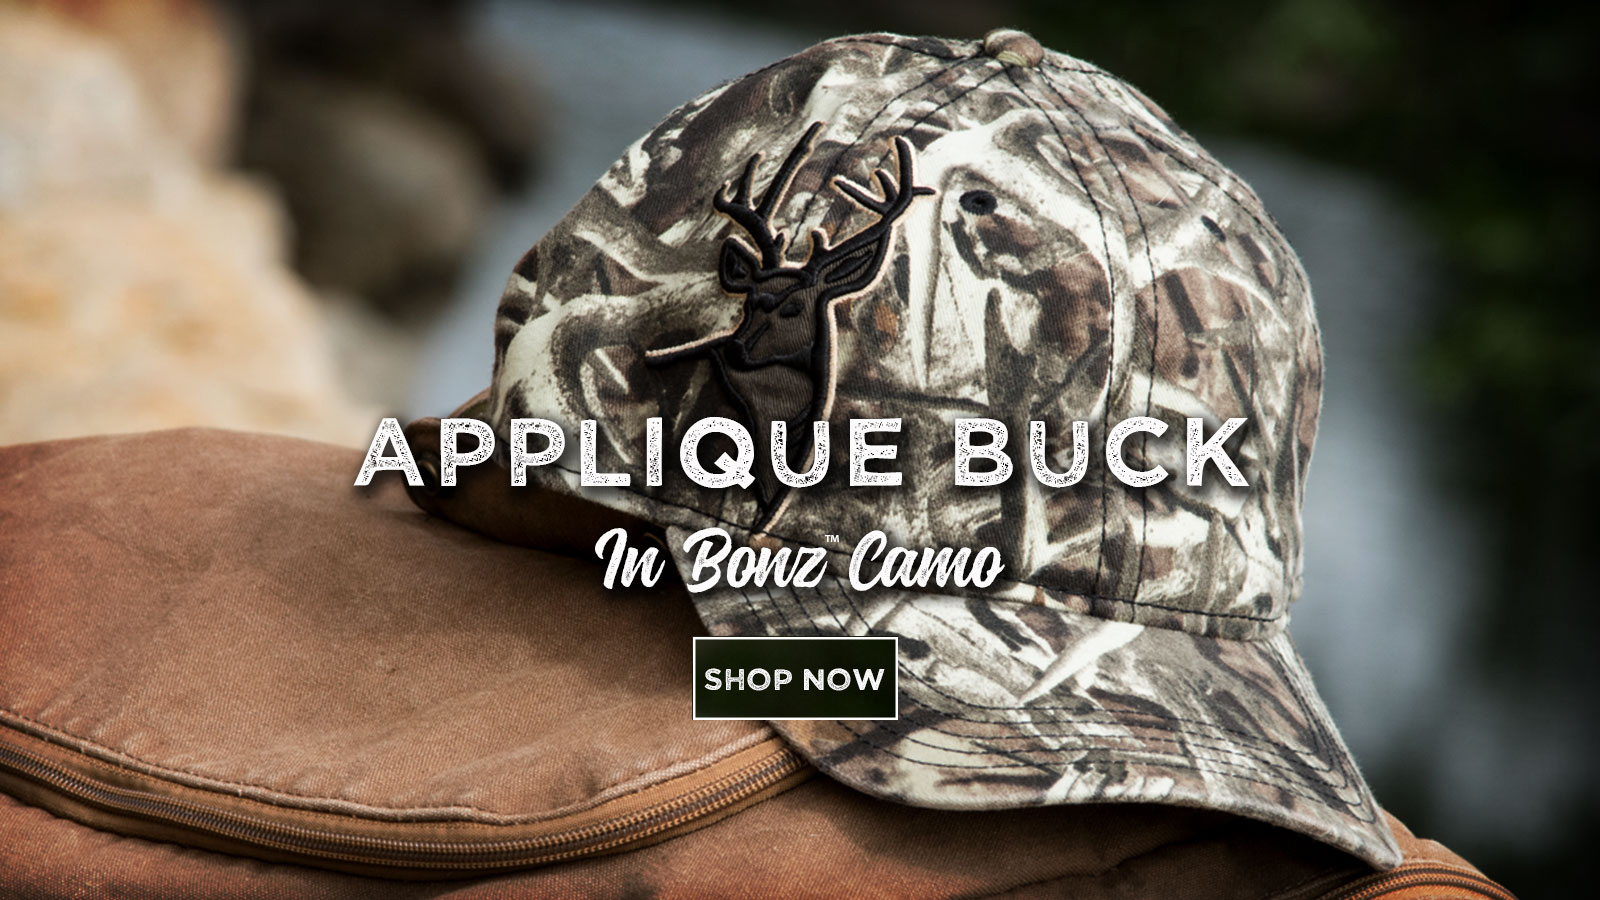 Applique Buck